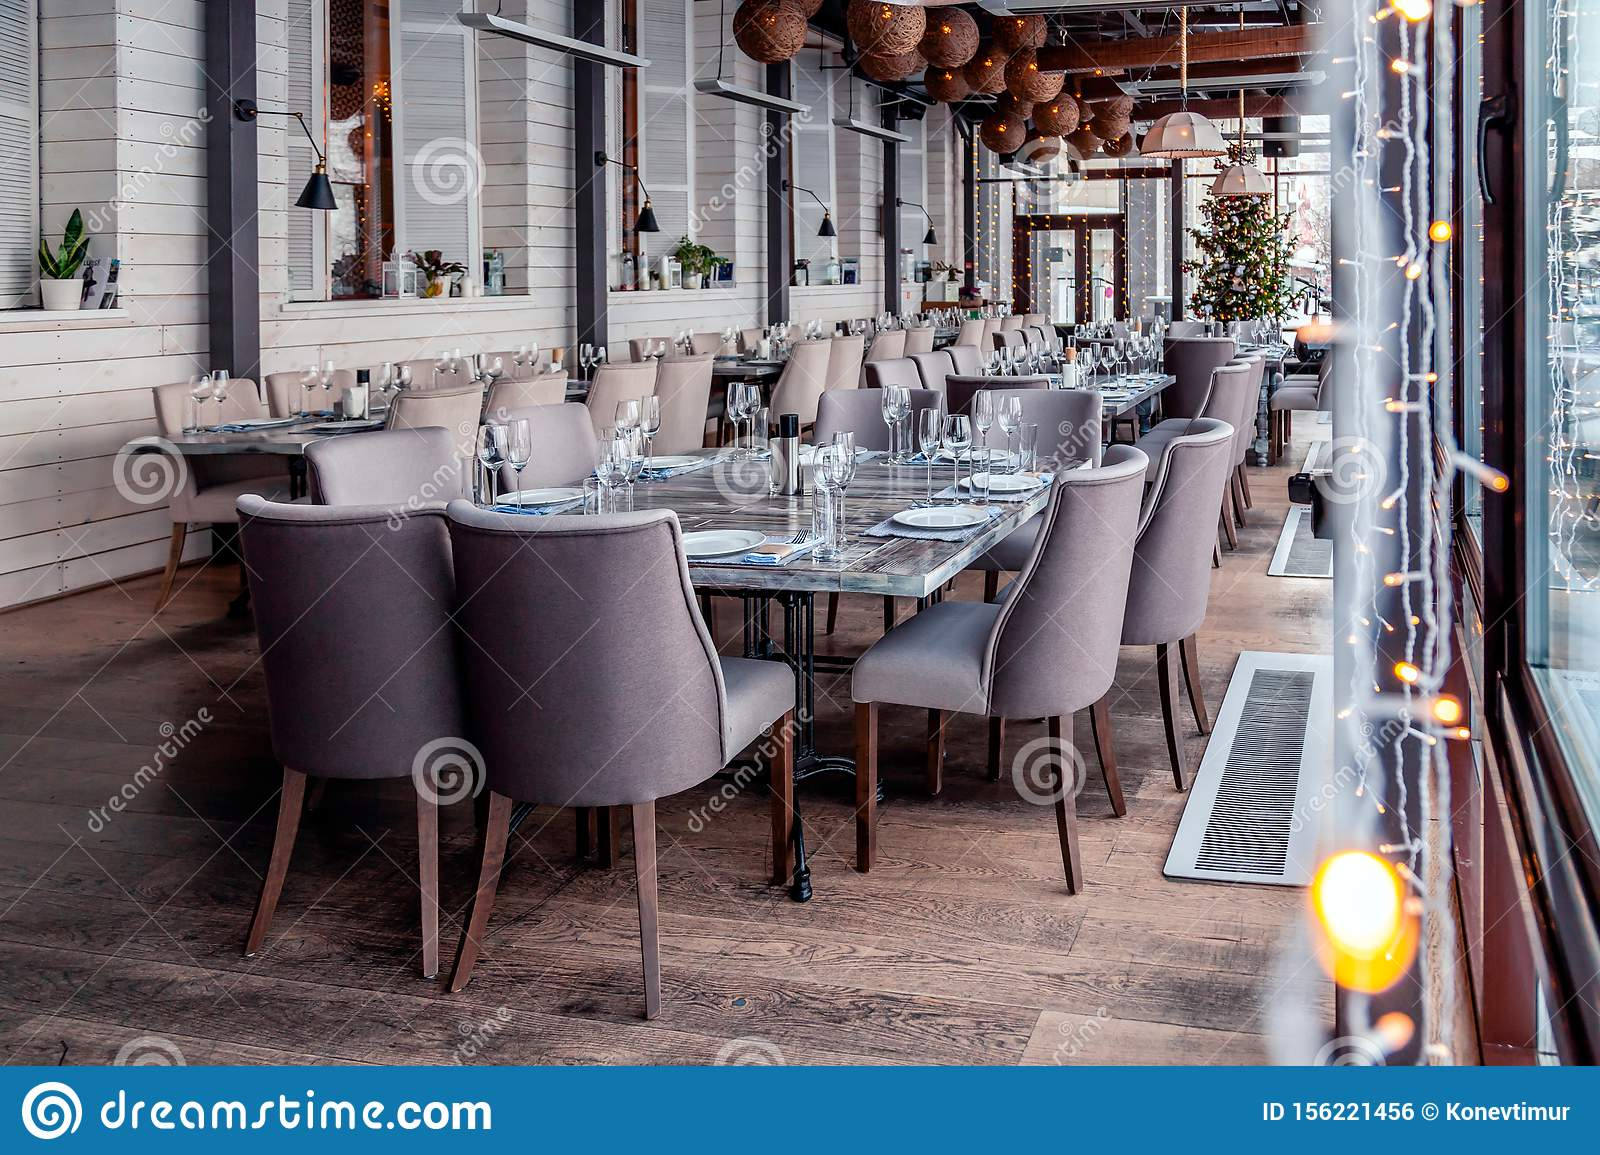 Christmas Lights Decor Interior Modern Restaurant Panoramic Windows Setting Serving Banquet Gray Textile Chairs Serving Stock Photo Image Of Cafe Design 156221456